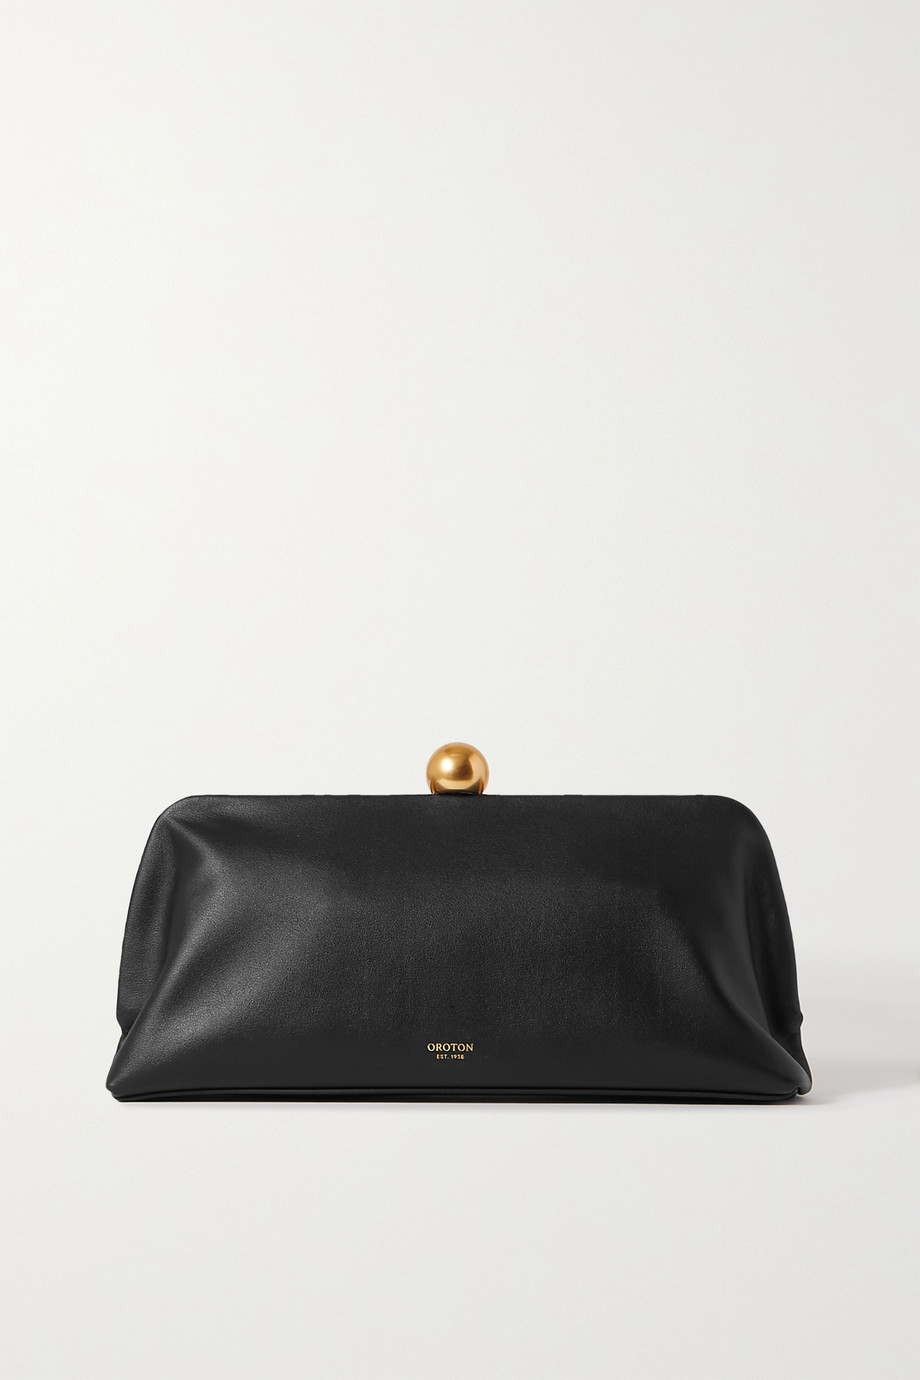 OROTON Nova leather clutch